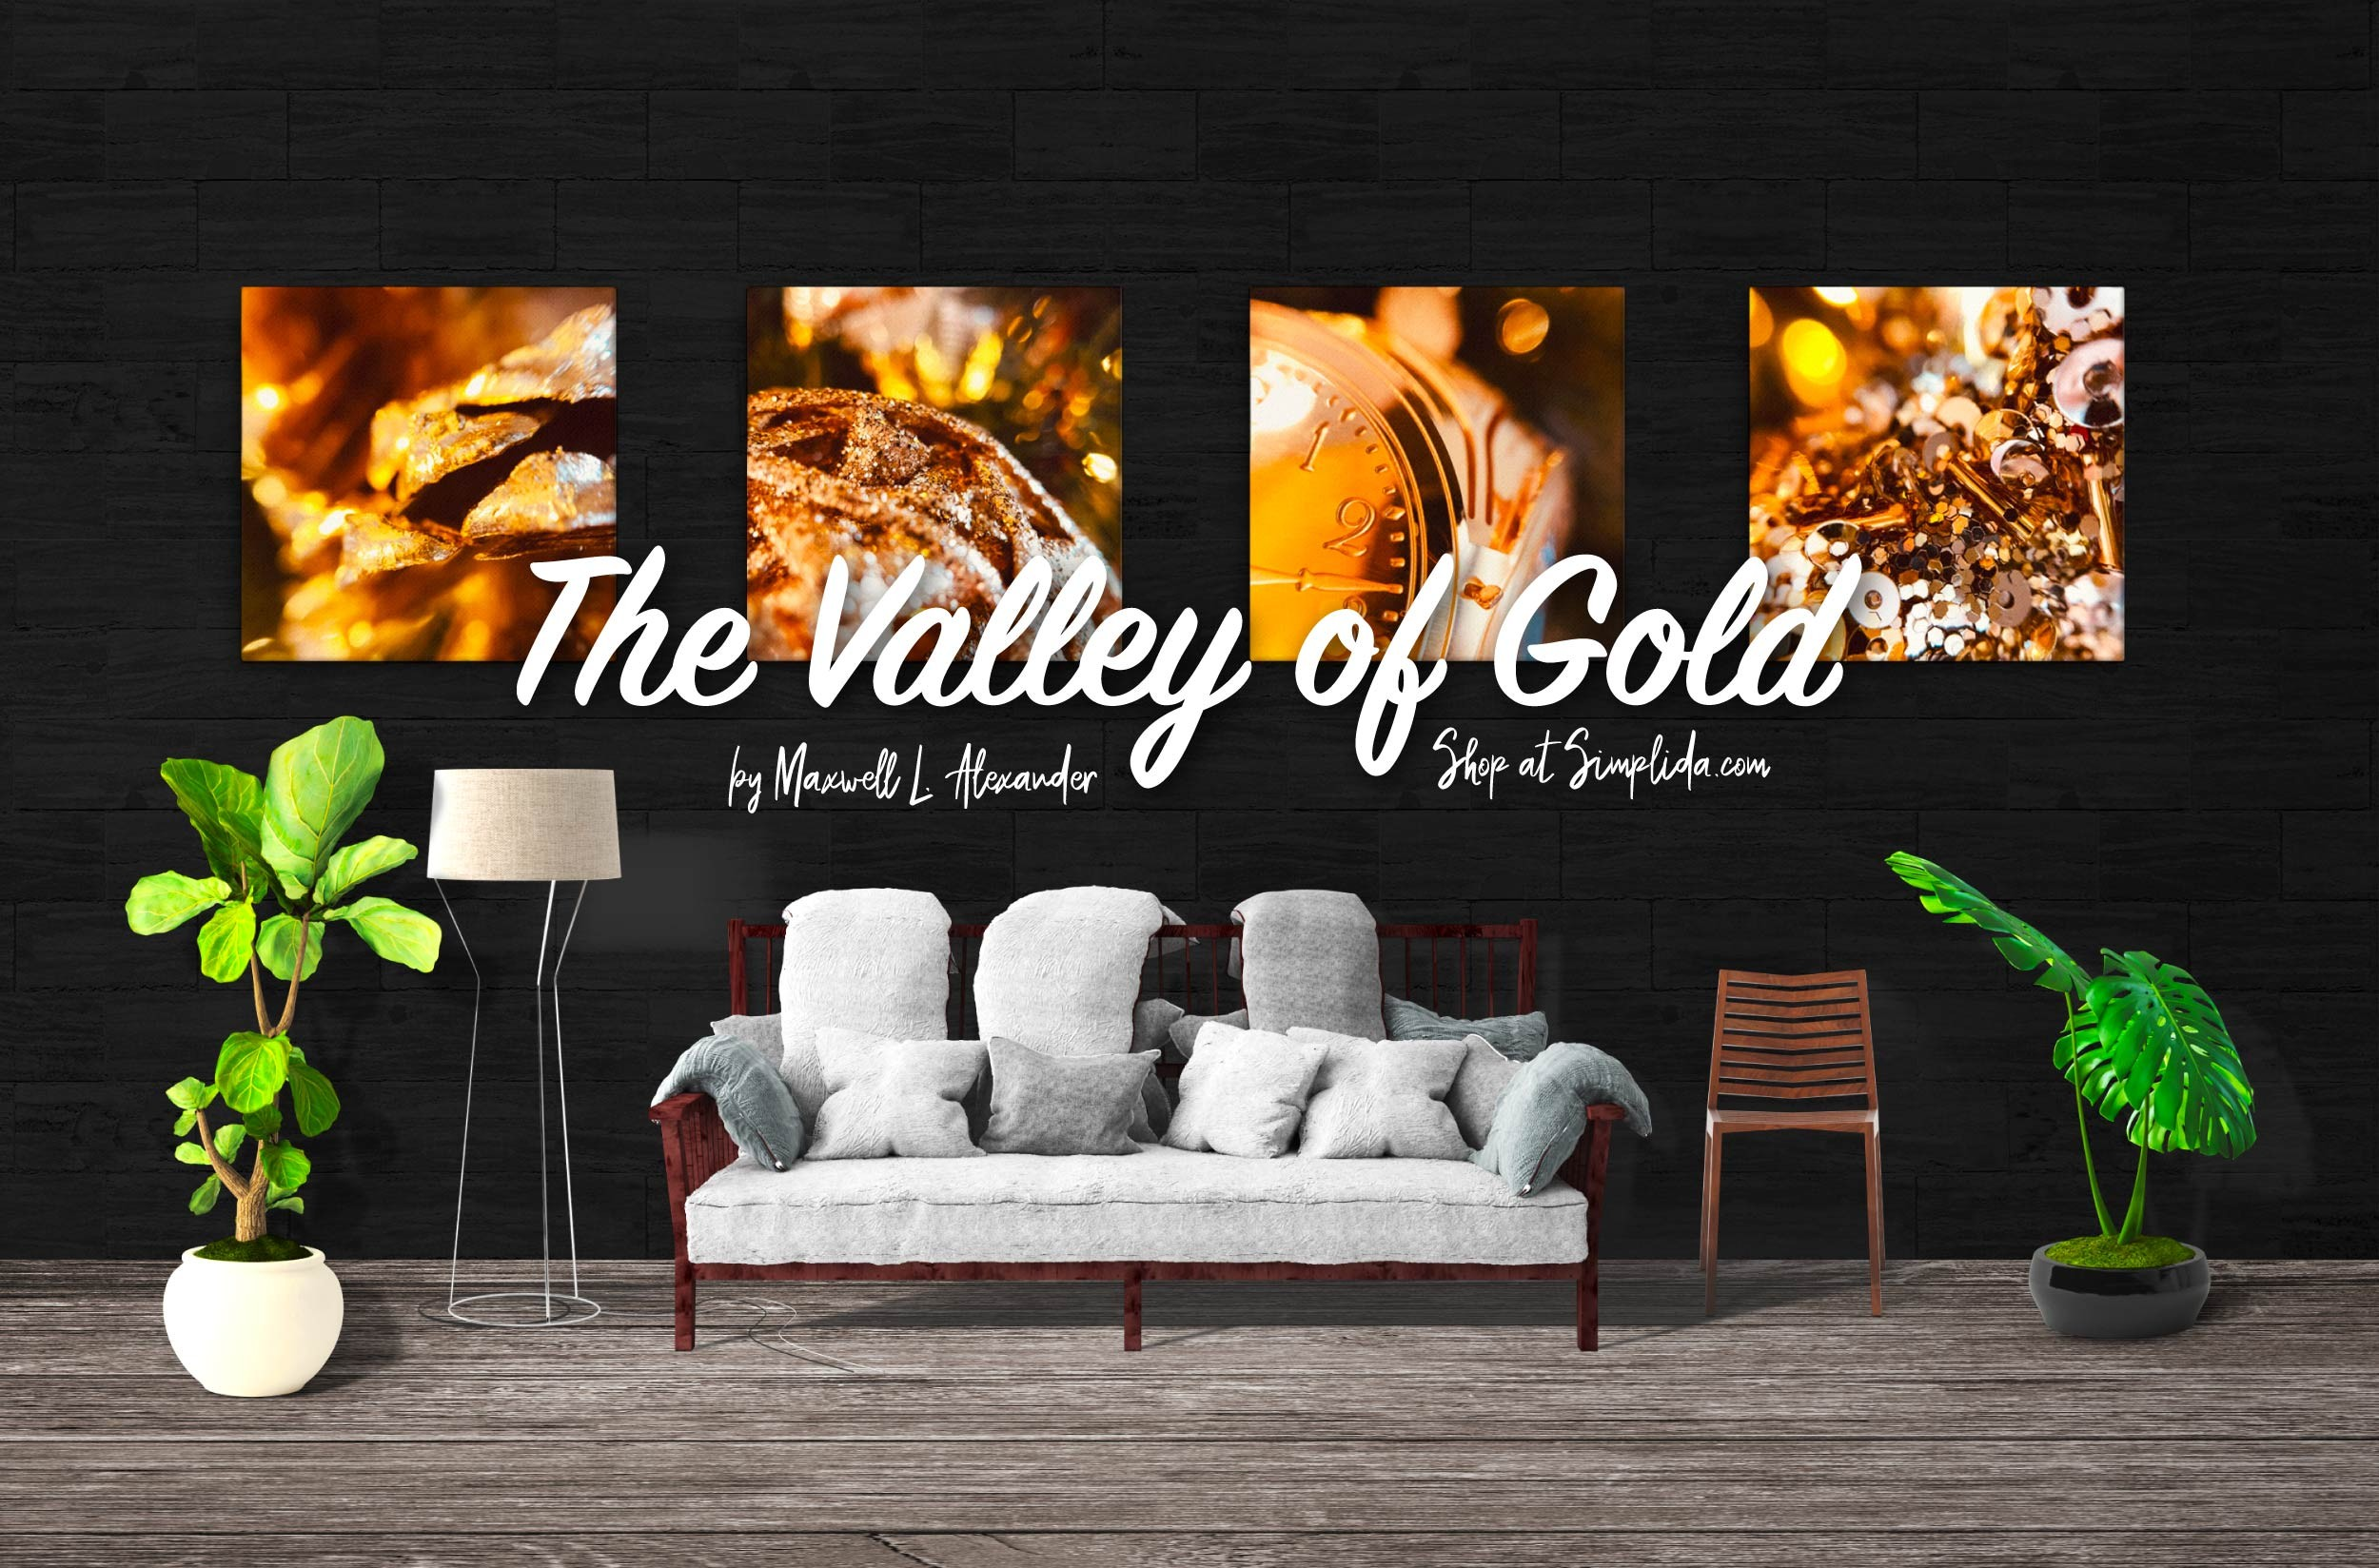 The Valley of Gold - Explore Holiday Wall Art Decor Ideas at Simplida.com